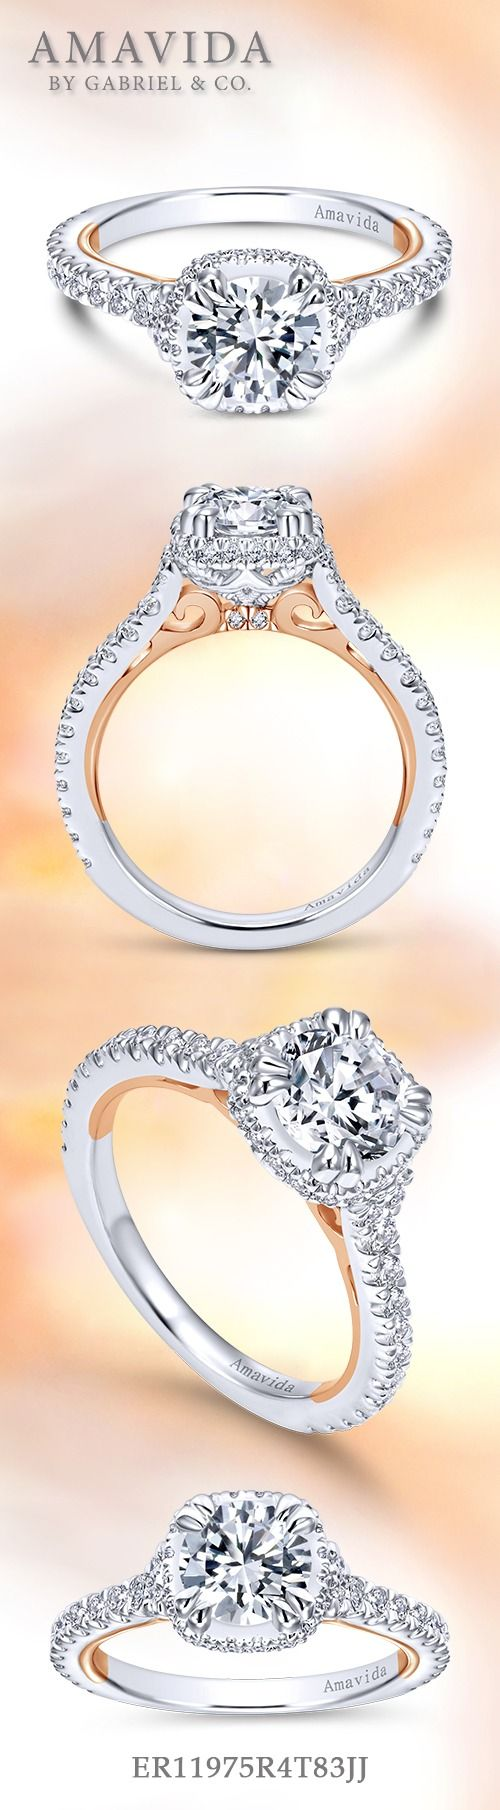 Gabriel & Co. - Voted #1 Most Preferred Fine Jewelry and Bridal Brand.